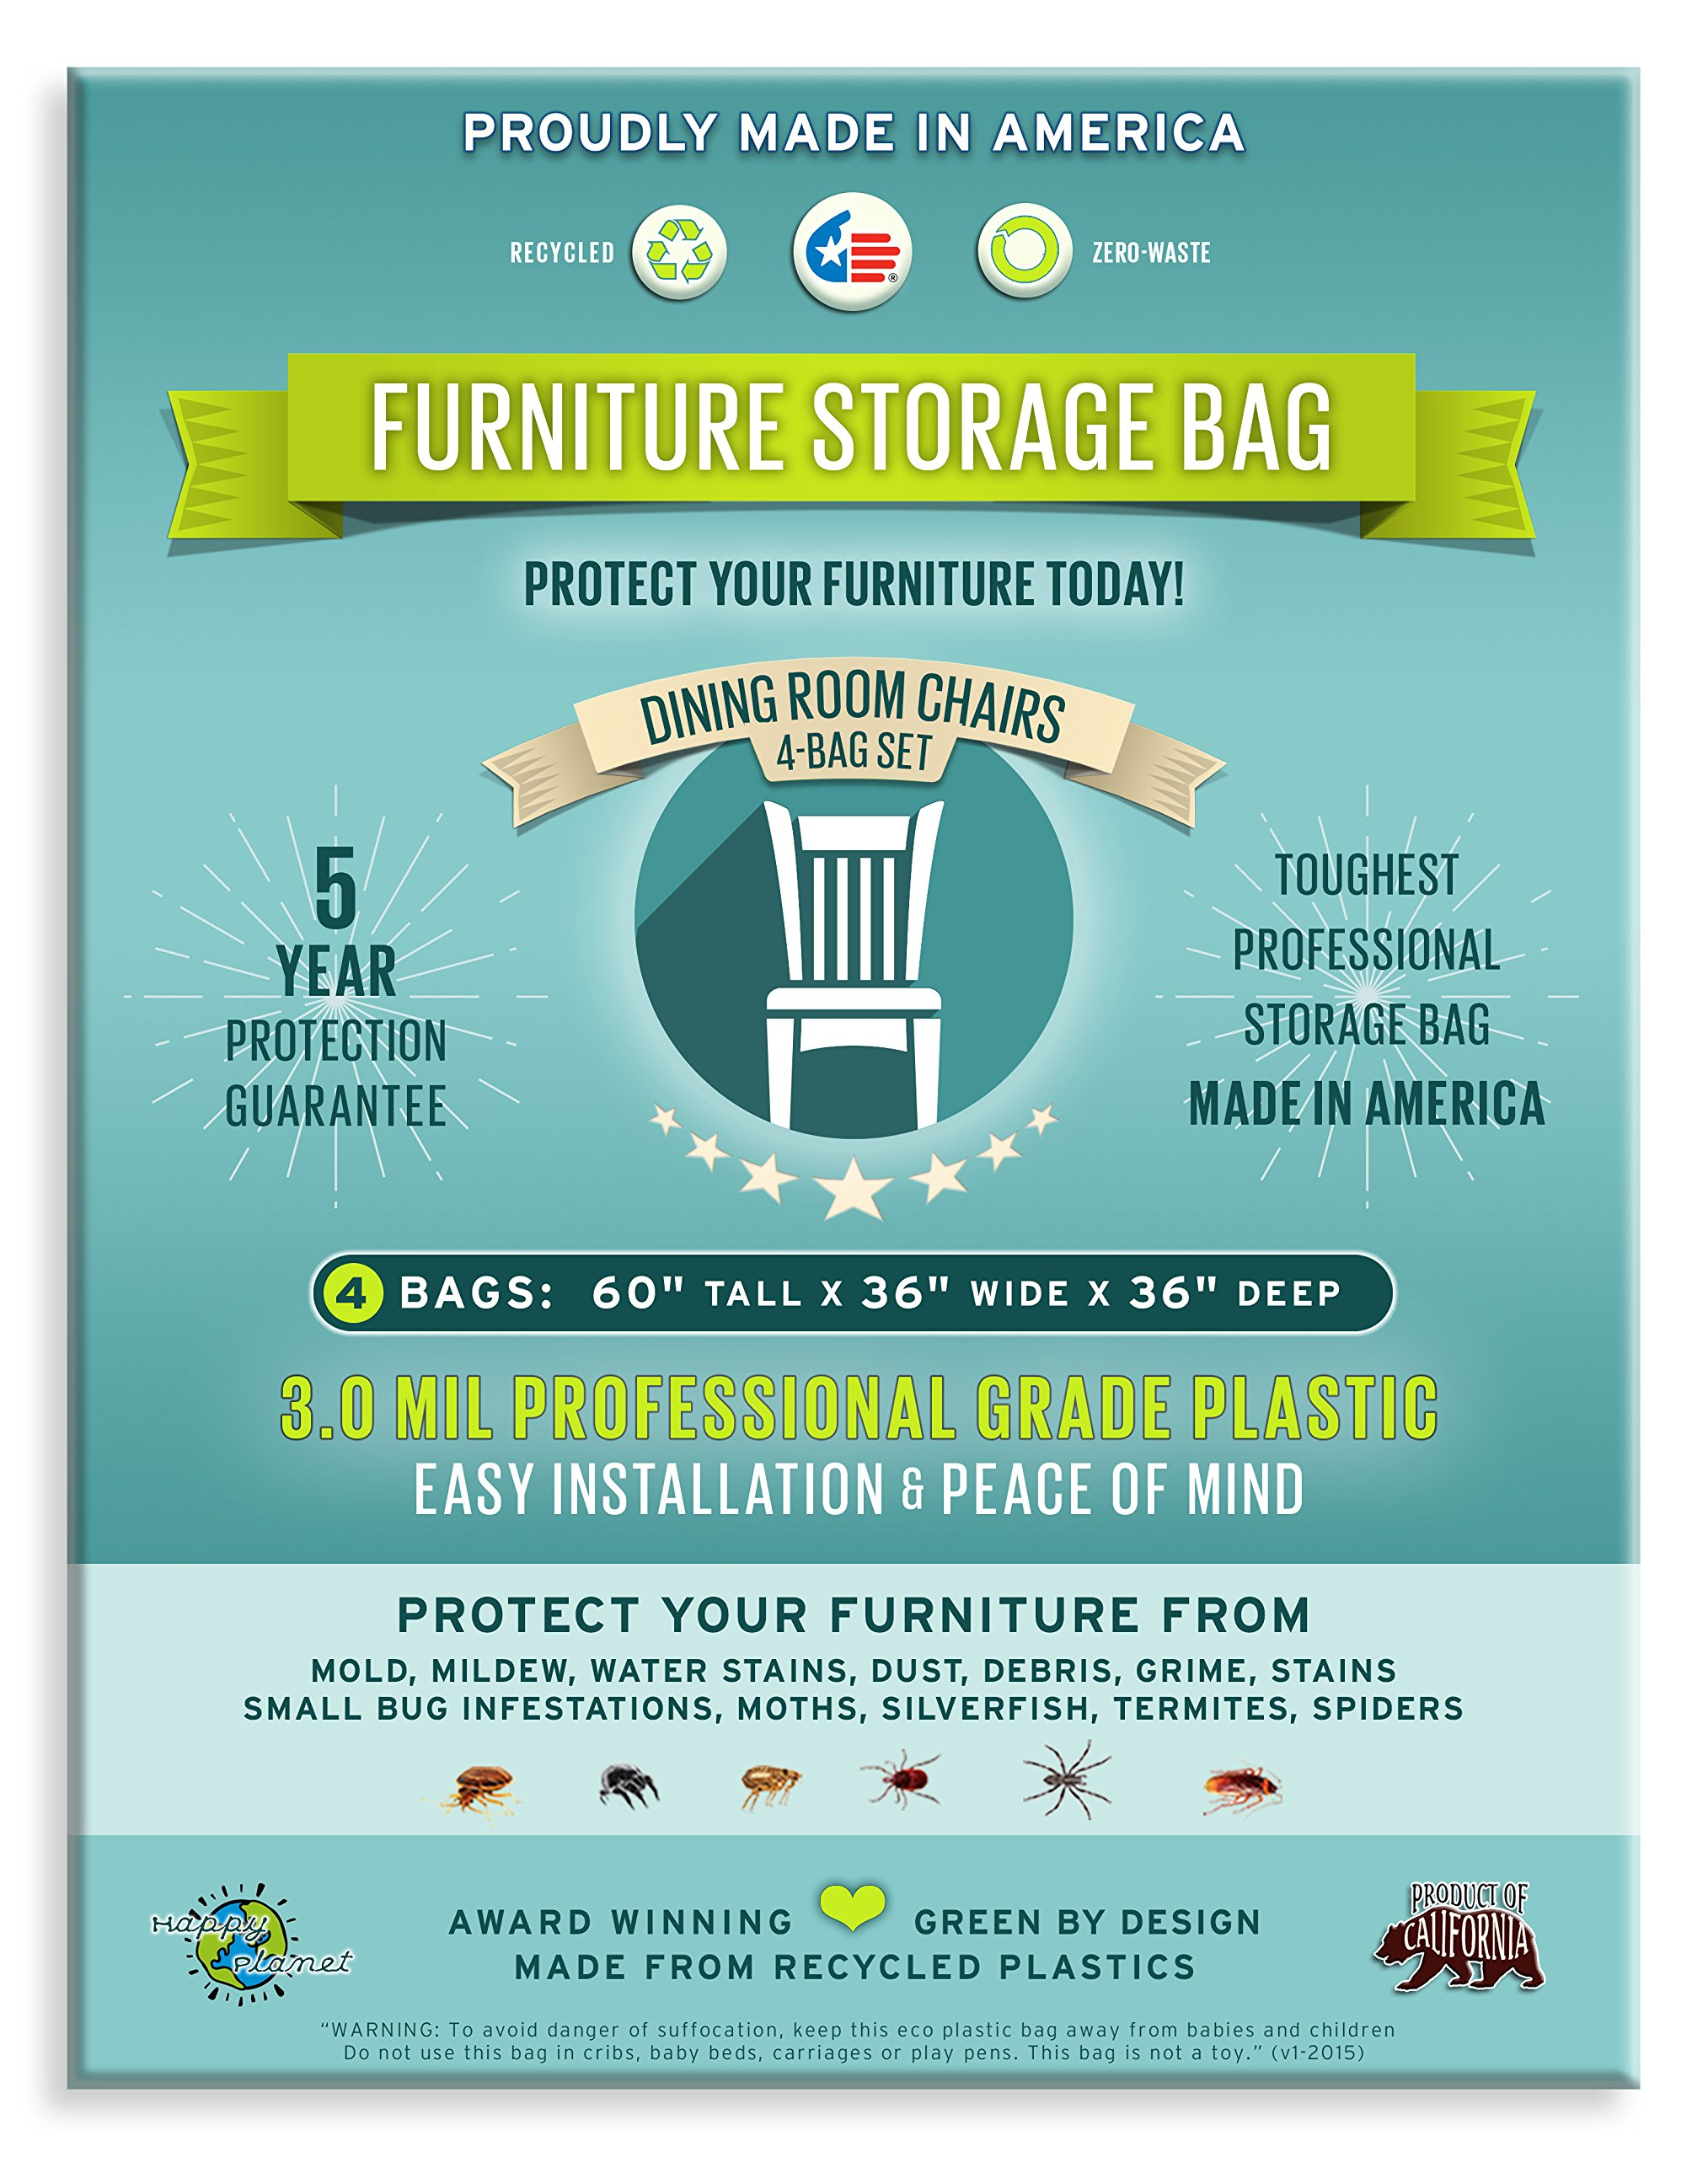 Four Count-Furniture Storage Bags-Dining Room Chair. 3 Mil Thick, Heavy Duty, Professional Grade. Proudly Made in America. Award Winning.